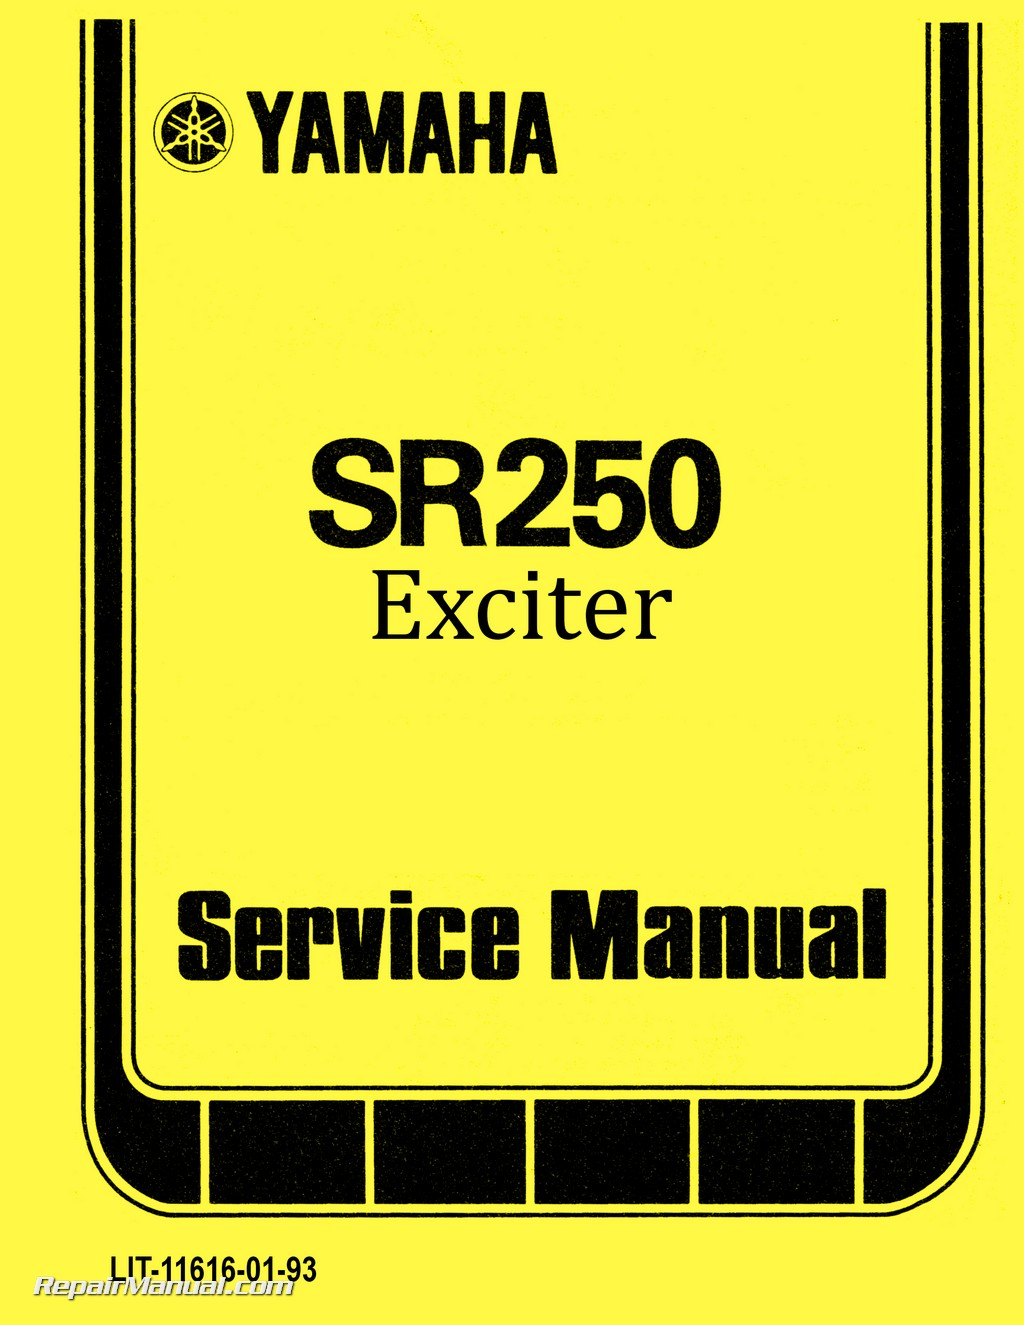 1980 1982 yamaha sr250 exciter motorcycle service manual rh repairmanual com 1981 yamaha sr250 exciter wiring diagram Yamaha Sb250